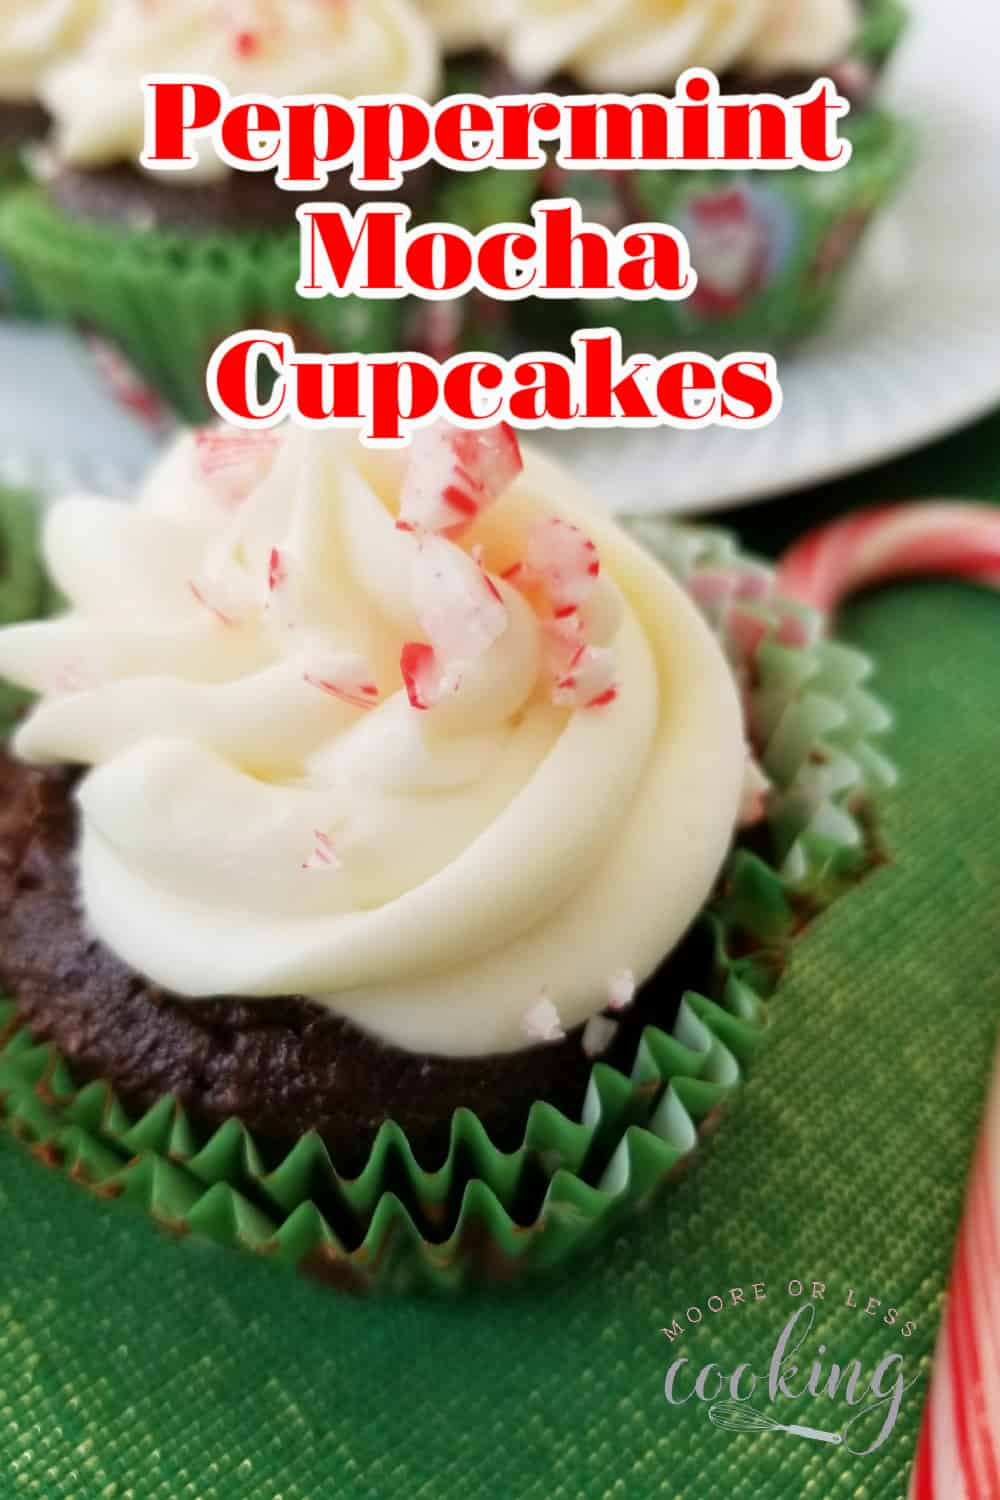 Rich and decadent, these Peppermint Mocha Cupcakes will help you kick off the holidays in a delicious way. From their minty and mocha cake flavor topped with a creamy frosting to the dusting of crushed candy canes on top, these cupcakes are the perfect sweet treat to celebrate the season. via @Mooreorlesscook